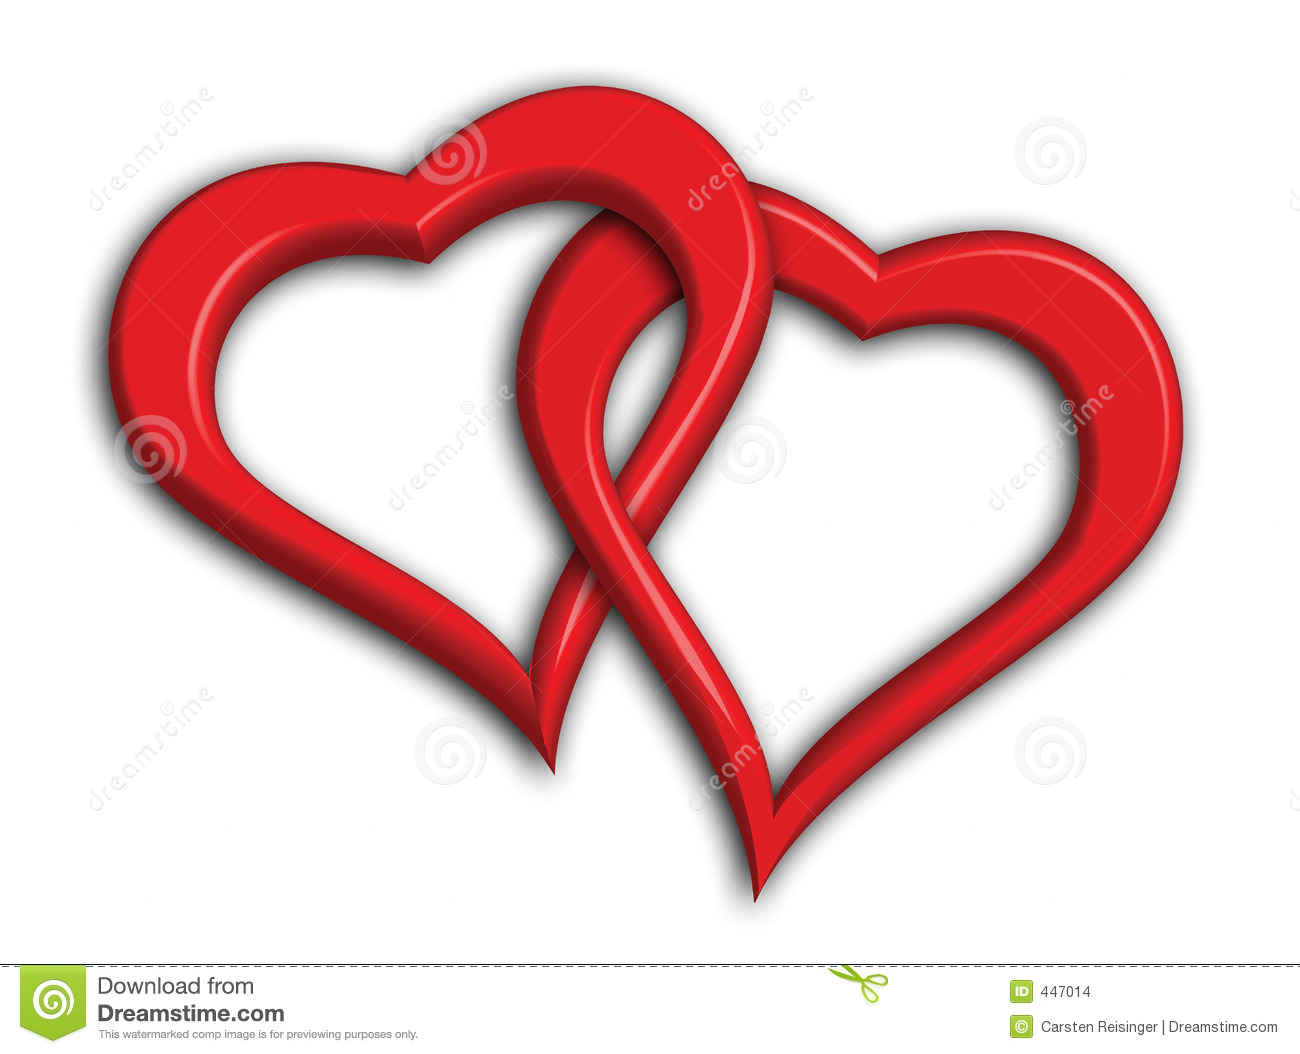 Two hearts intertwined - clipping path included (drop shadows not ...